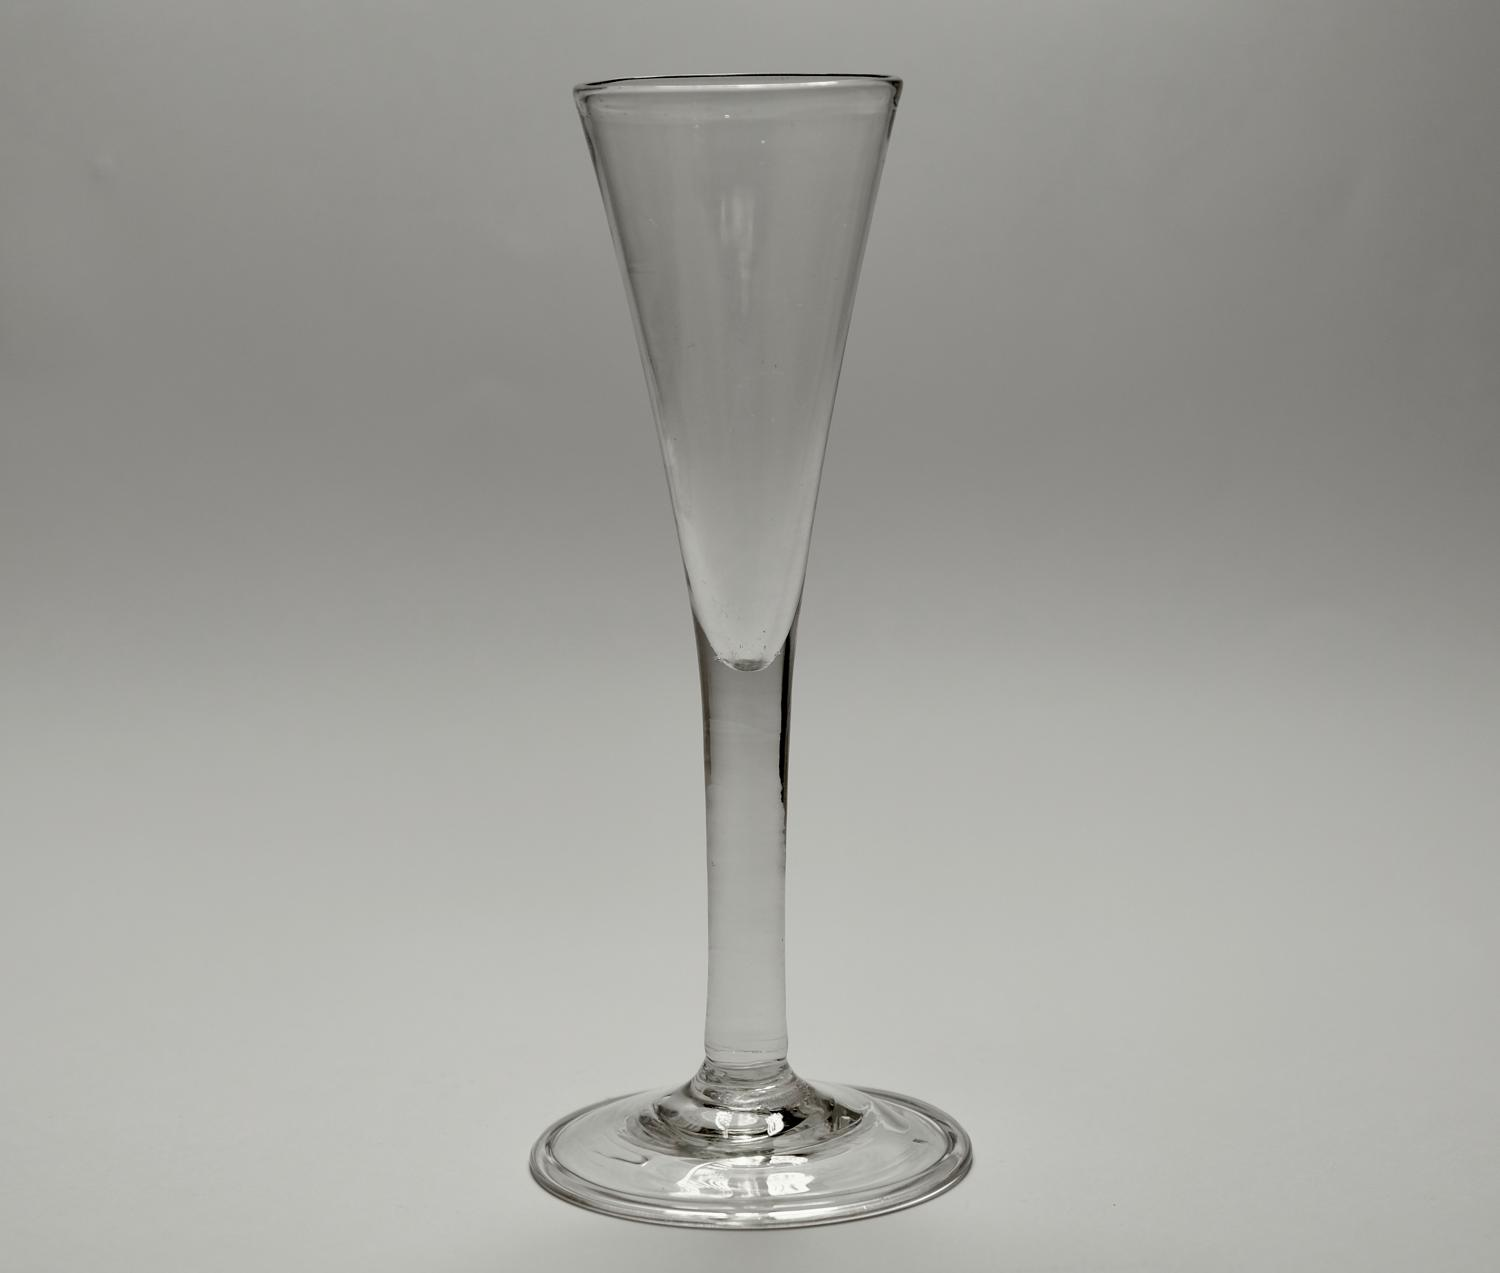 Plain stem wine flute / ale glass. English C1760.